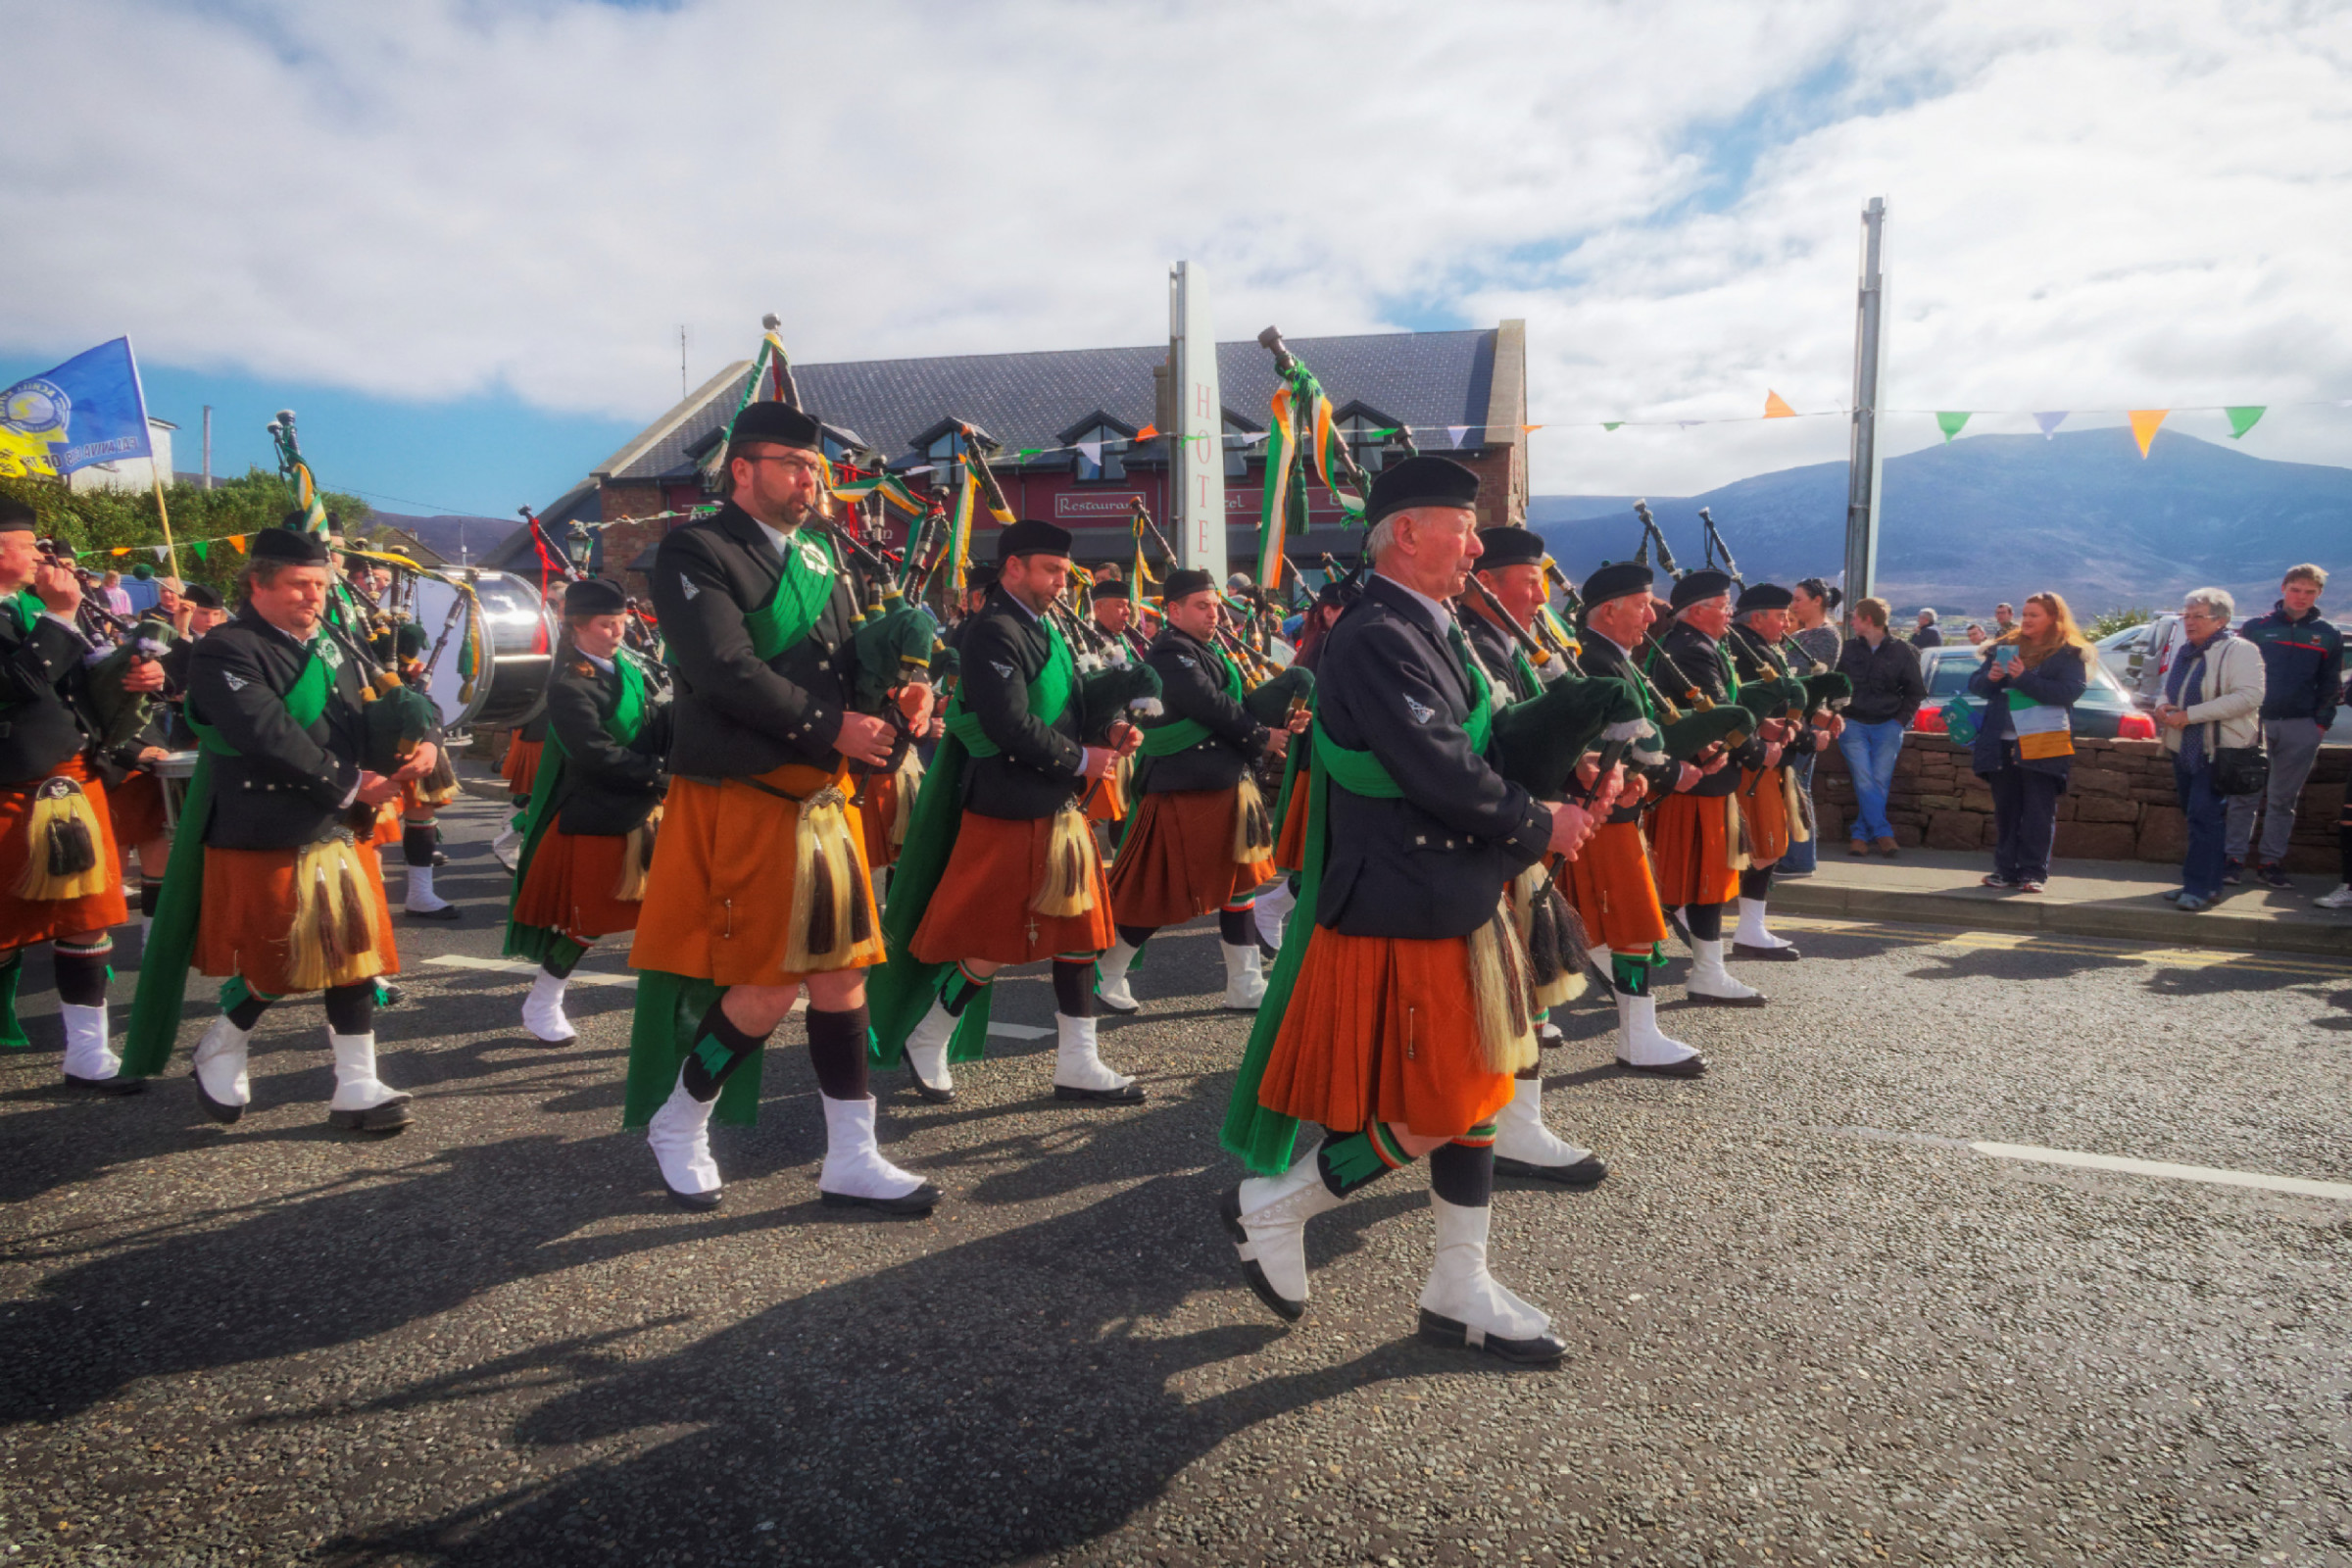 20160320125624-ie-achill-sound_parade-_DxO_13in_DxO96